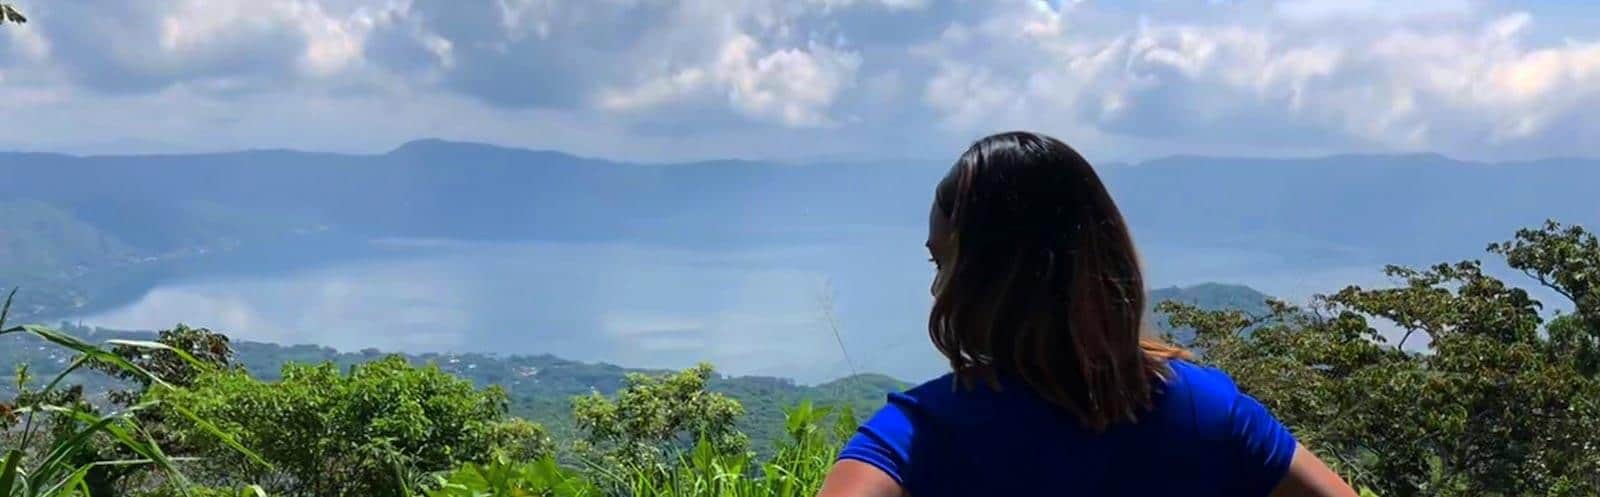 coatepeque lake el salvador, tours you can do in one day